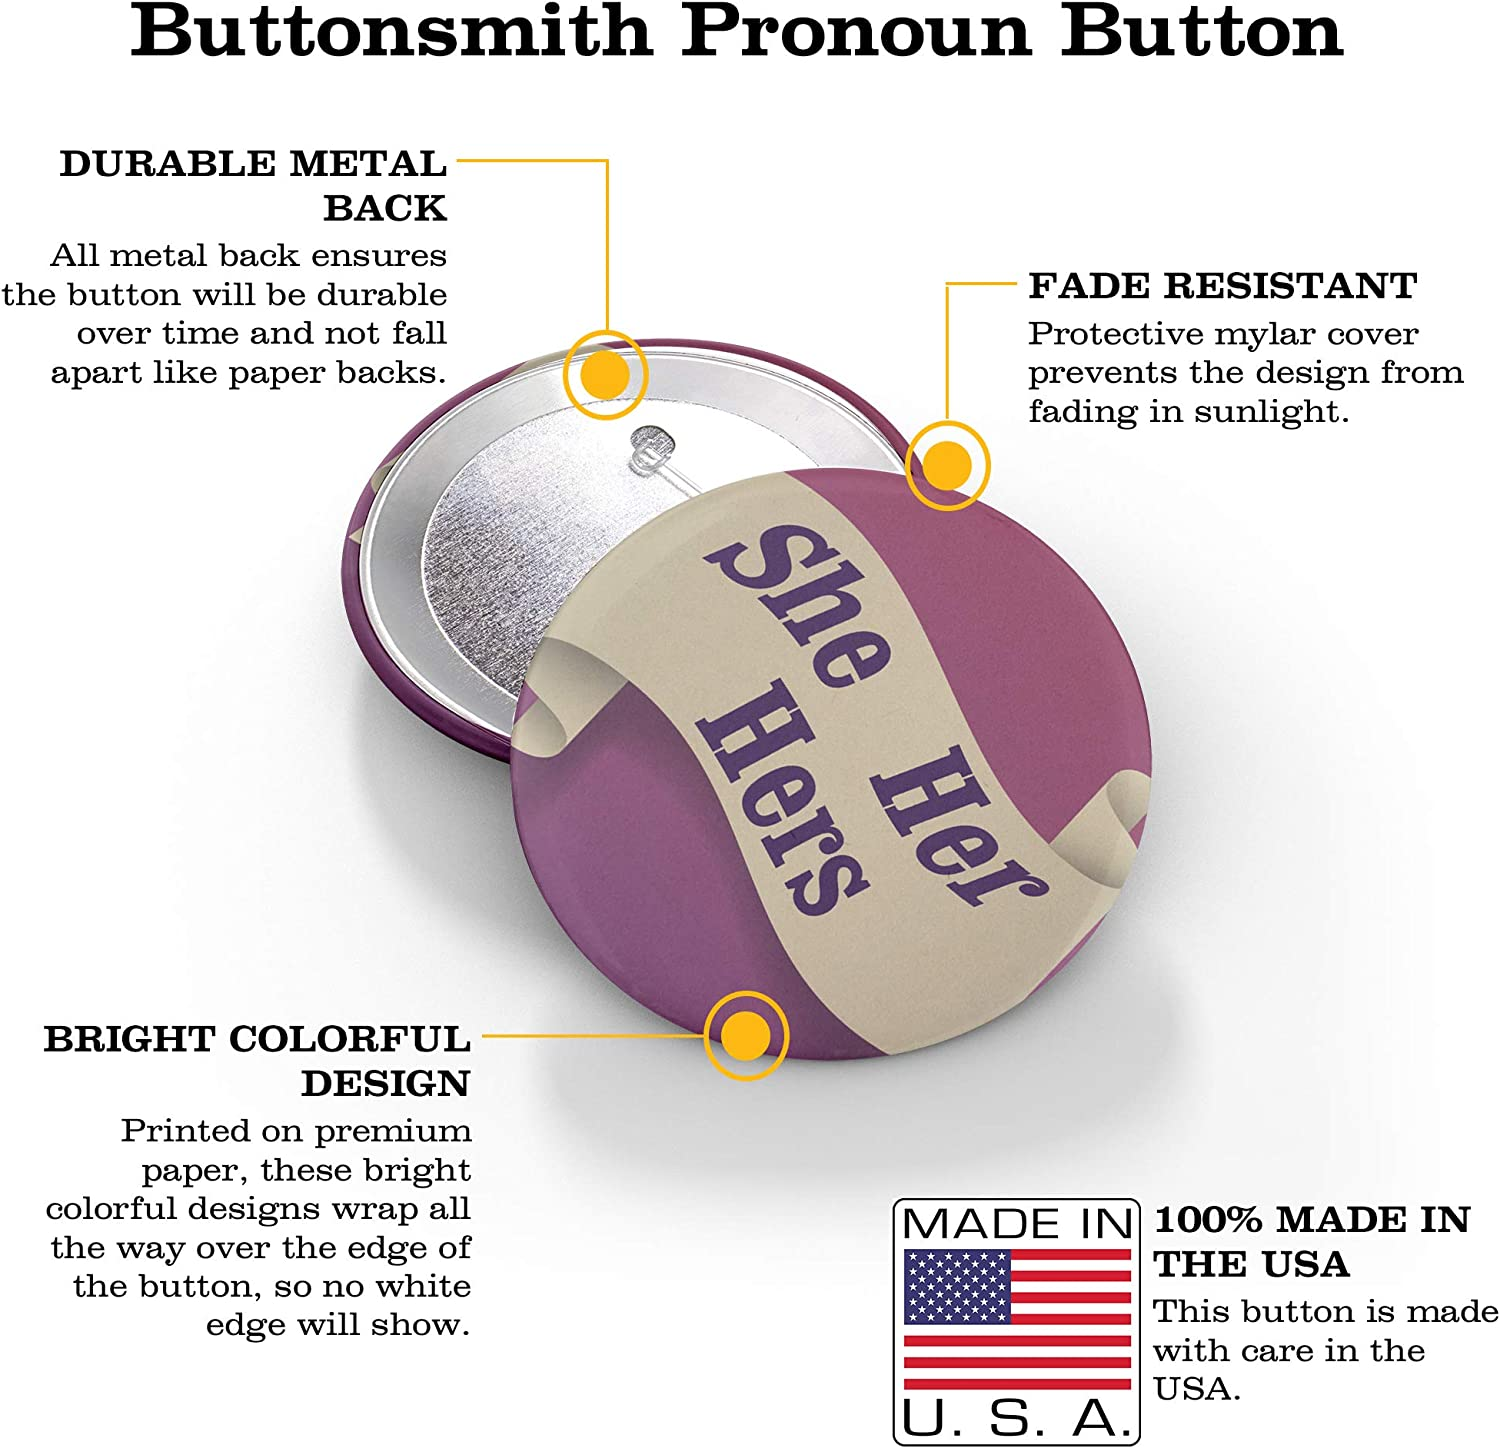 She Union Printed and Union Made He Set of 12 Buttons Made in the USA They Buttonsmith Pronoun Pinback Button